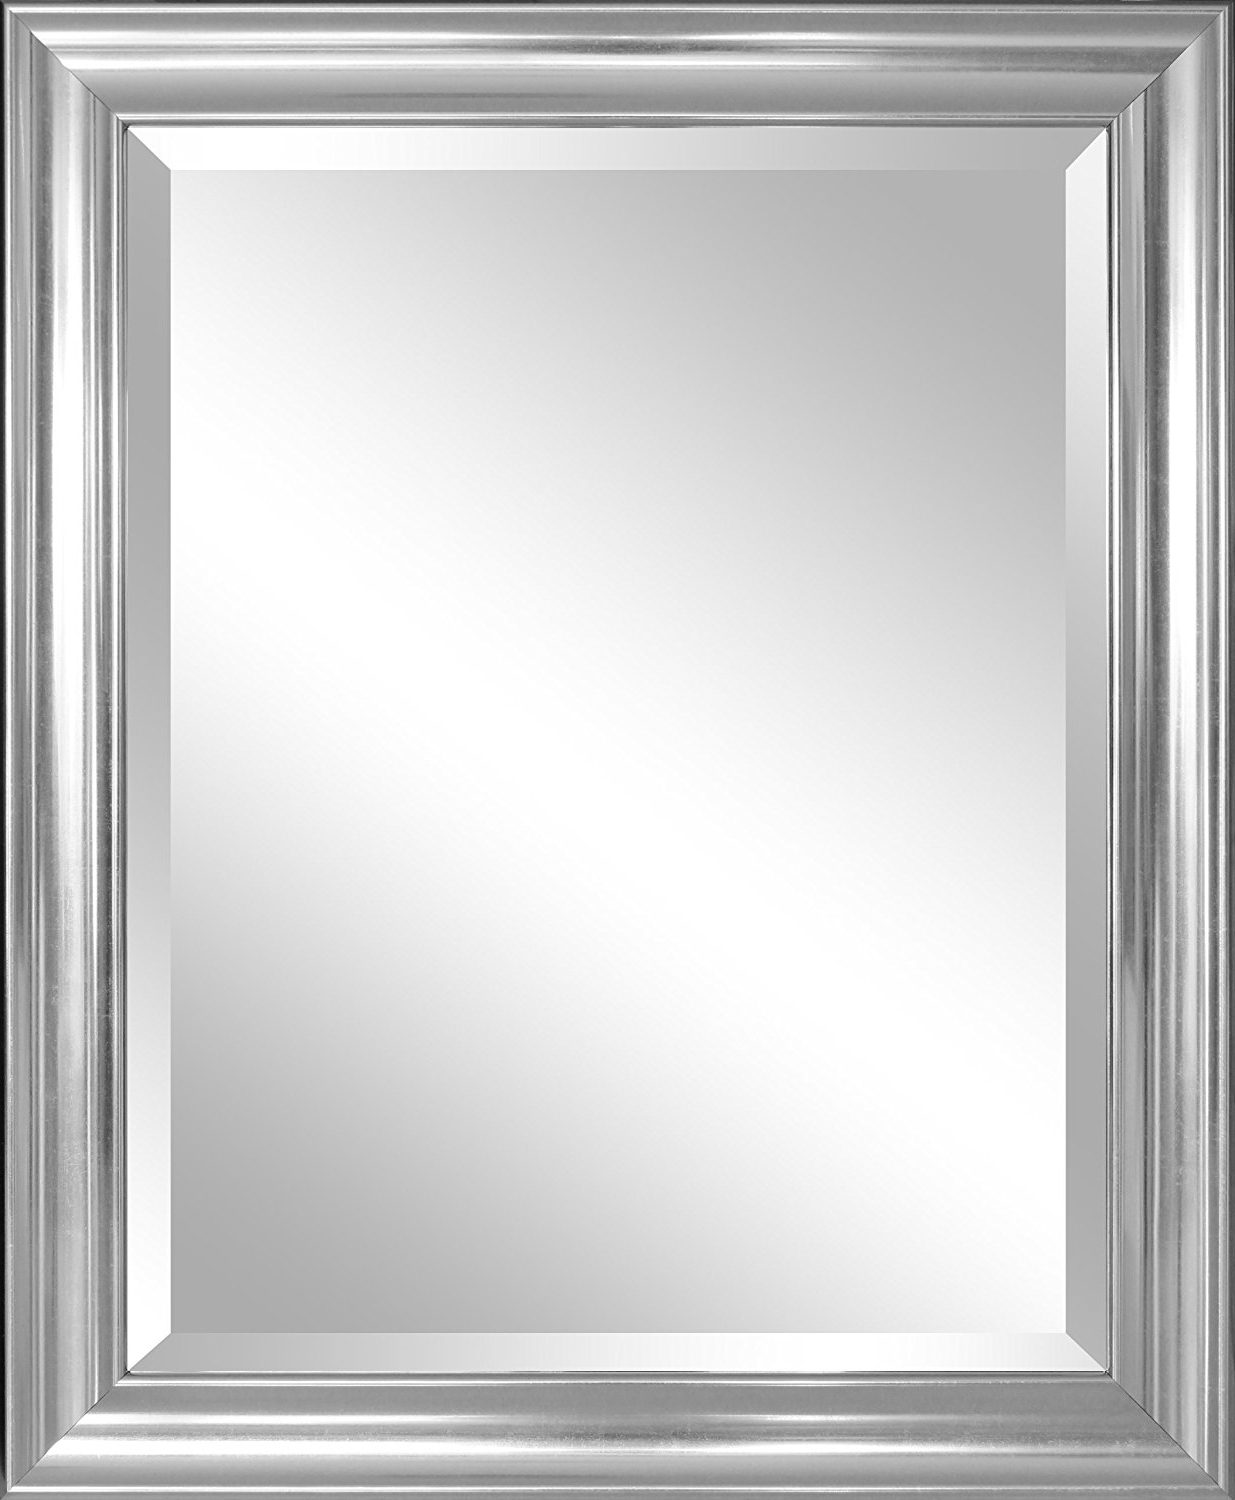 Preferred Large Silver Framed Wall Mirror Inside Silver Wall Mirror For Antique And Elegant Look (View 14 of 20)